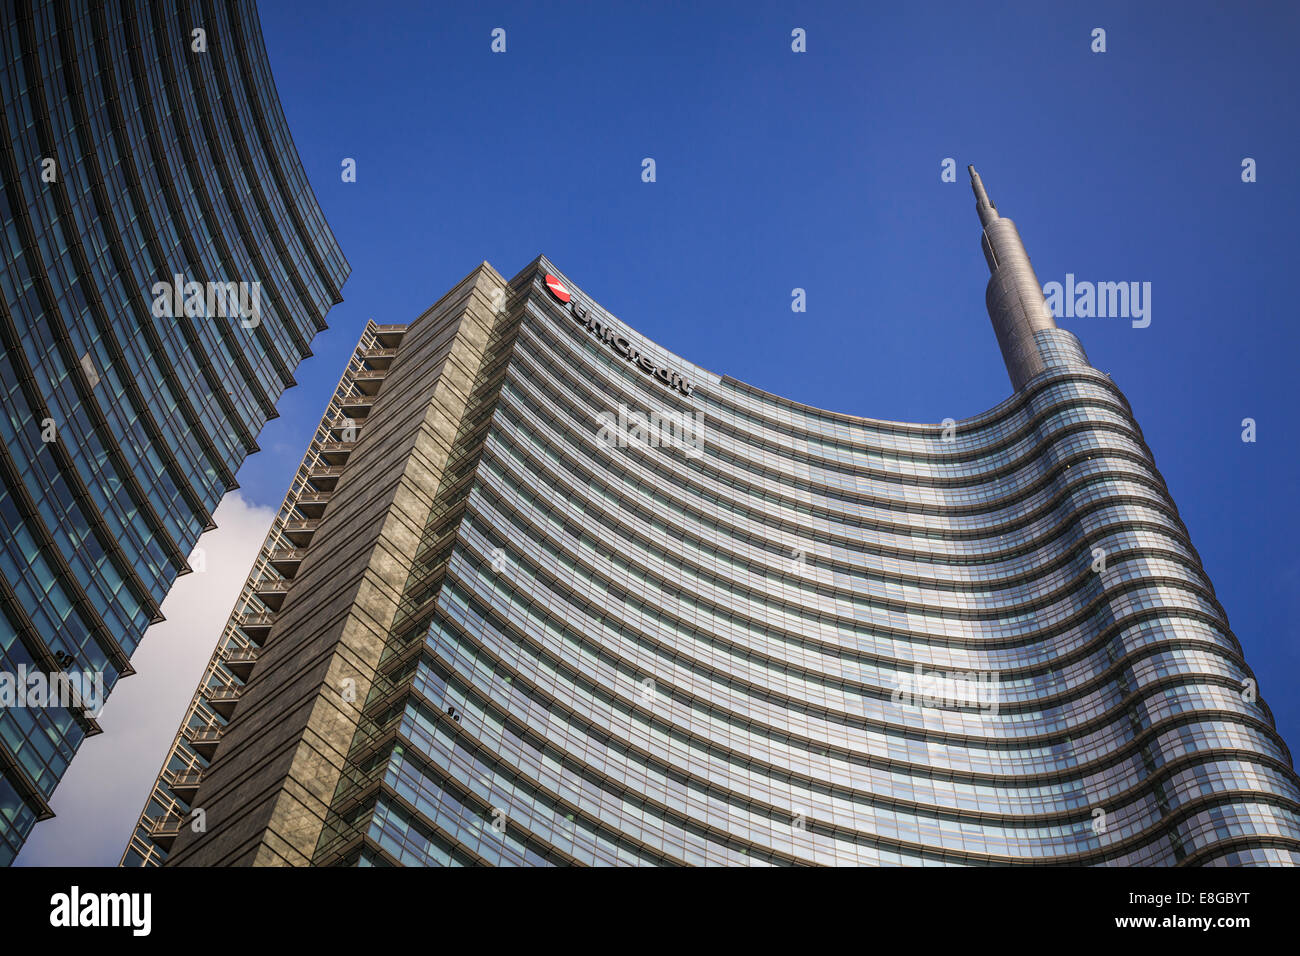 The Unicredit Tower (Torre Unicredit) , Milan, Italy - Stock Image